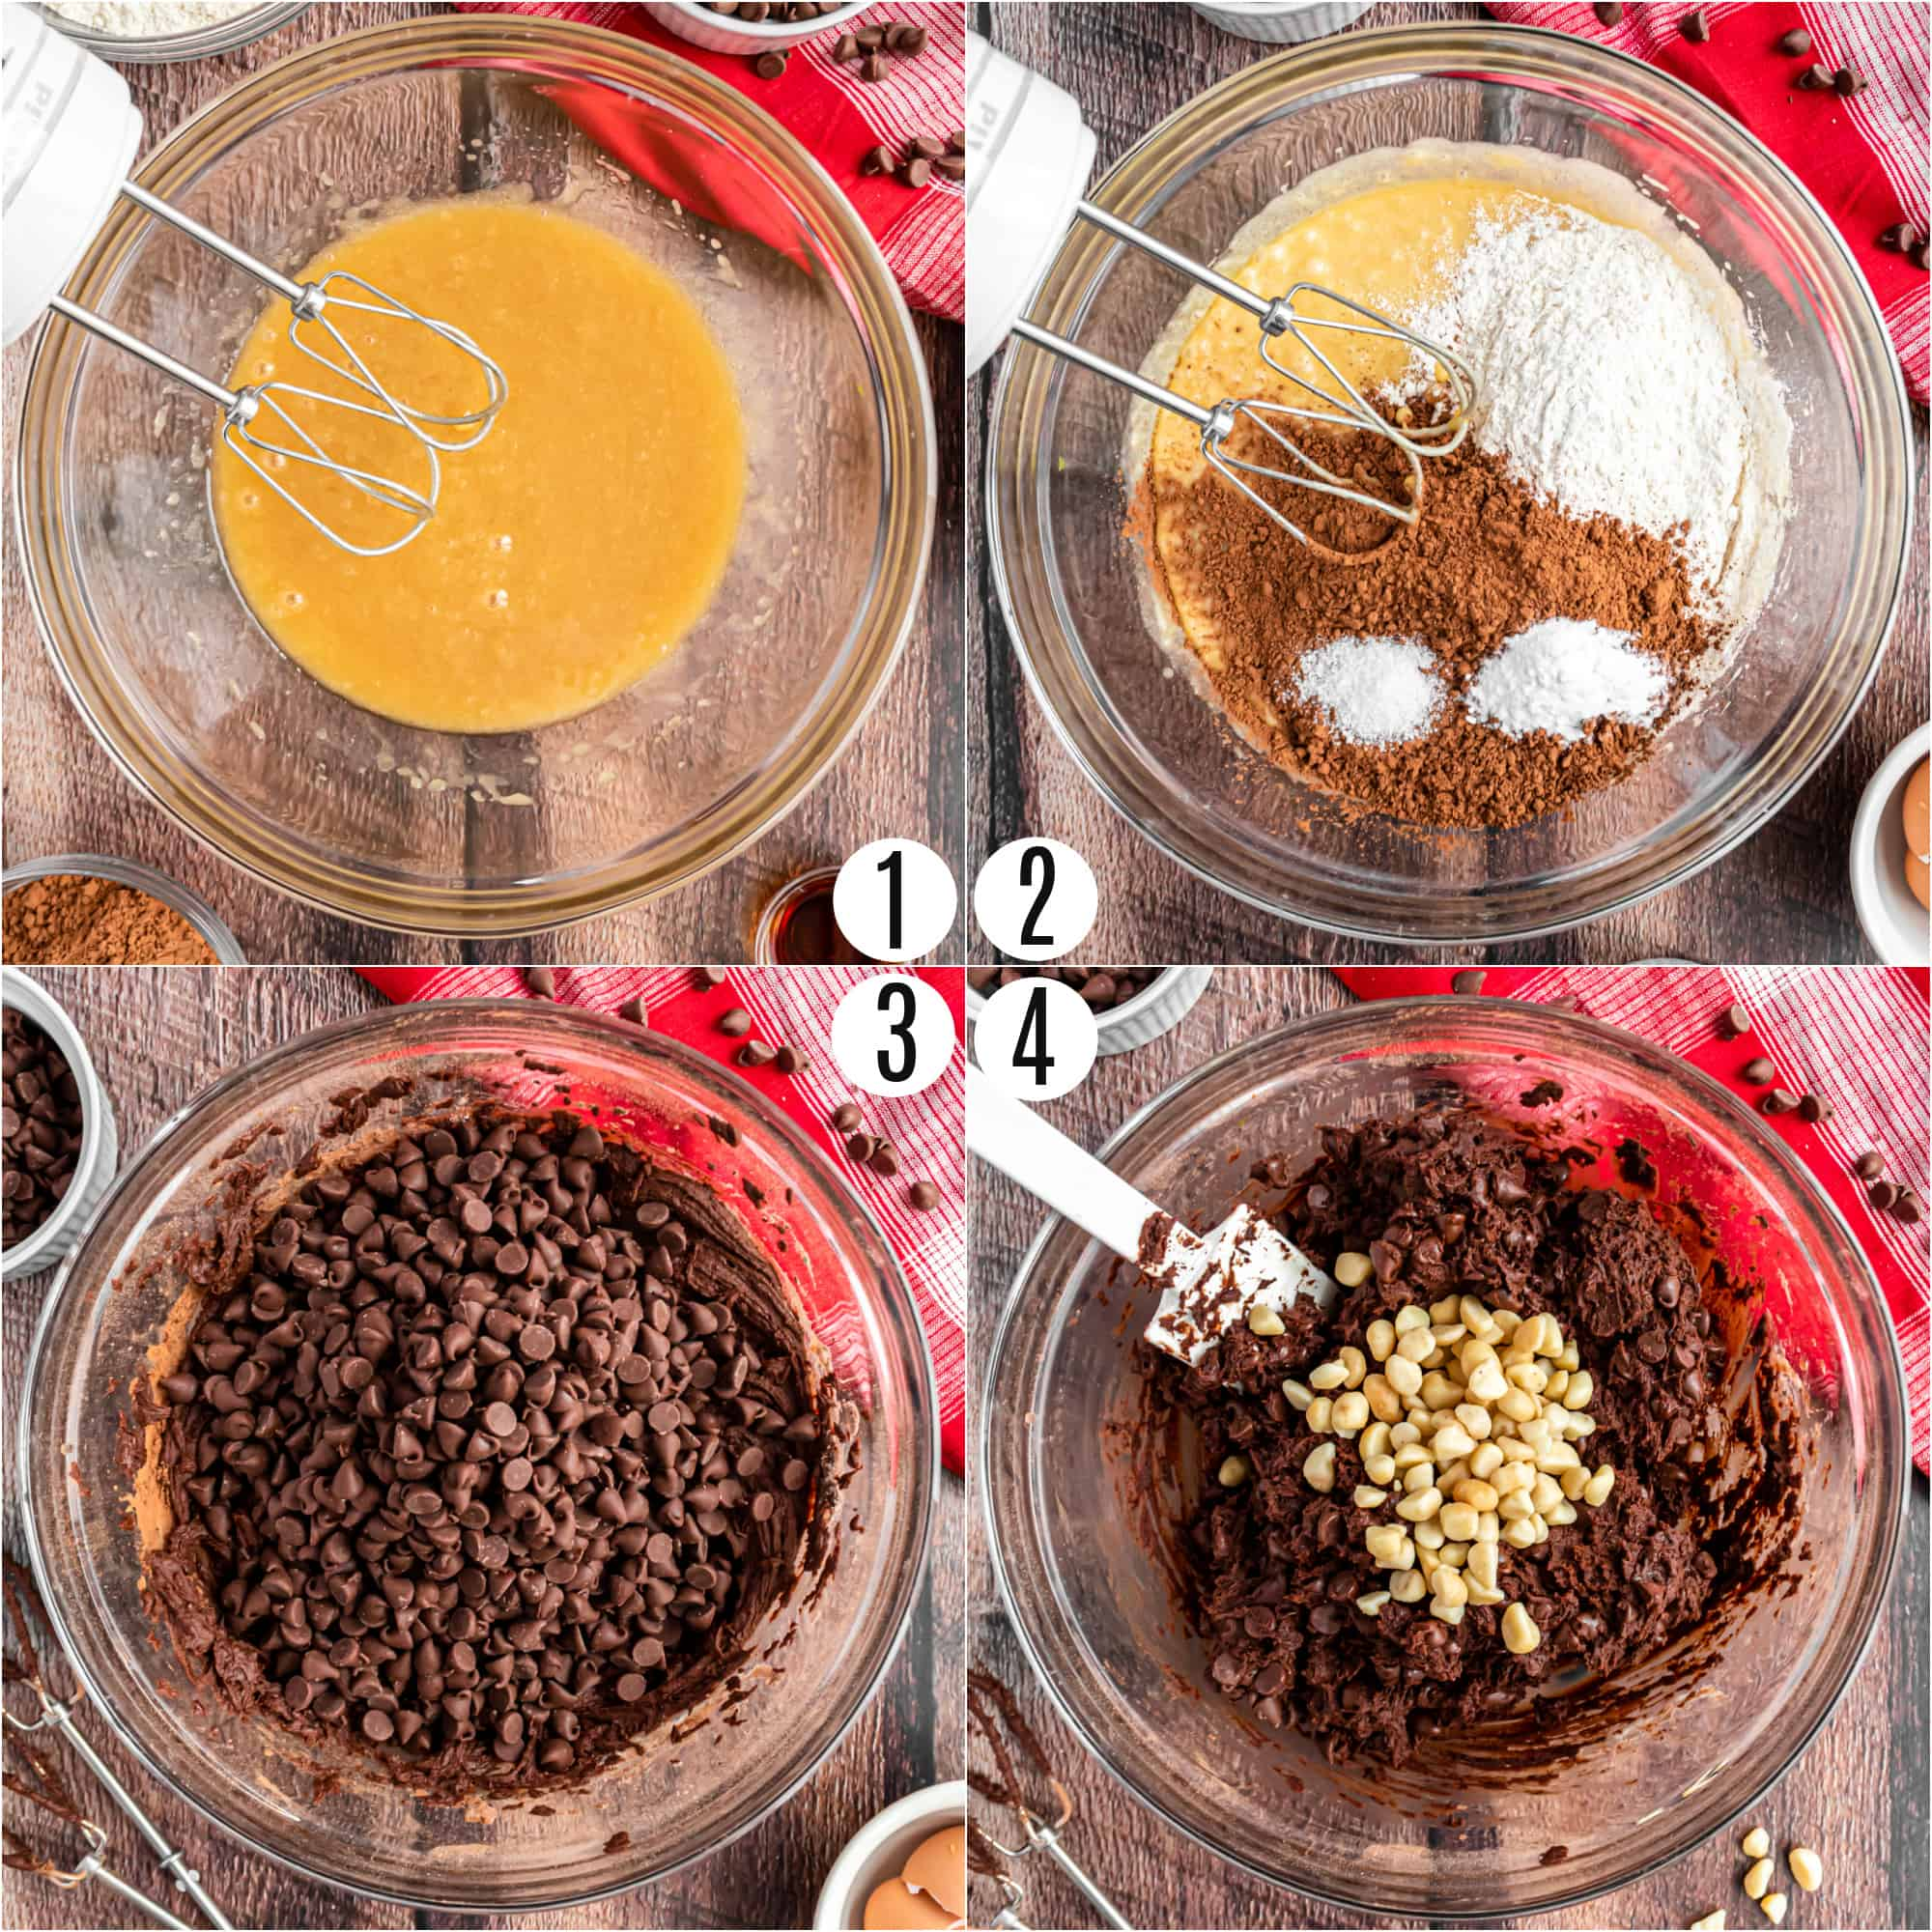 Step by step photos showing how to make chocolate macadamia nut cookies.